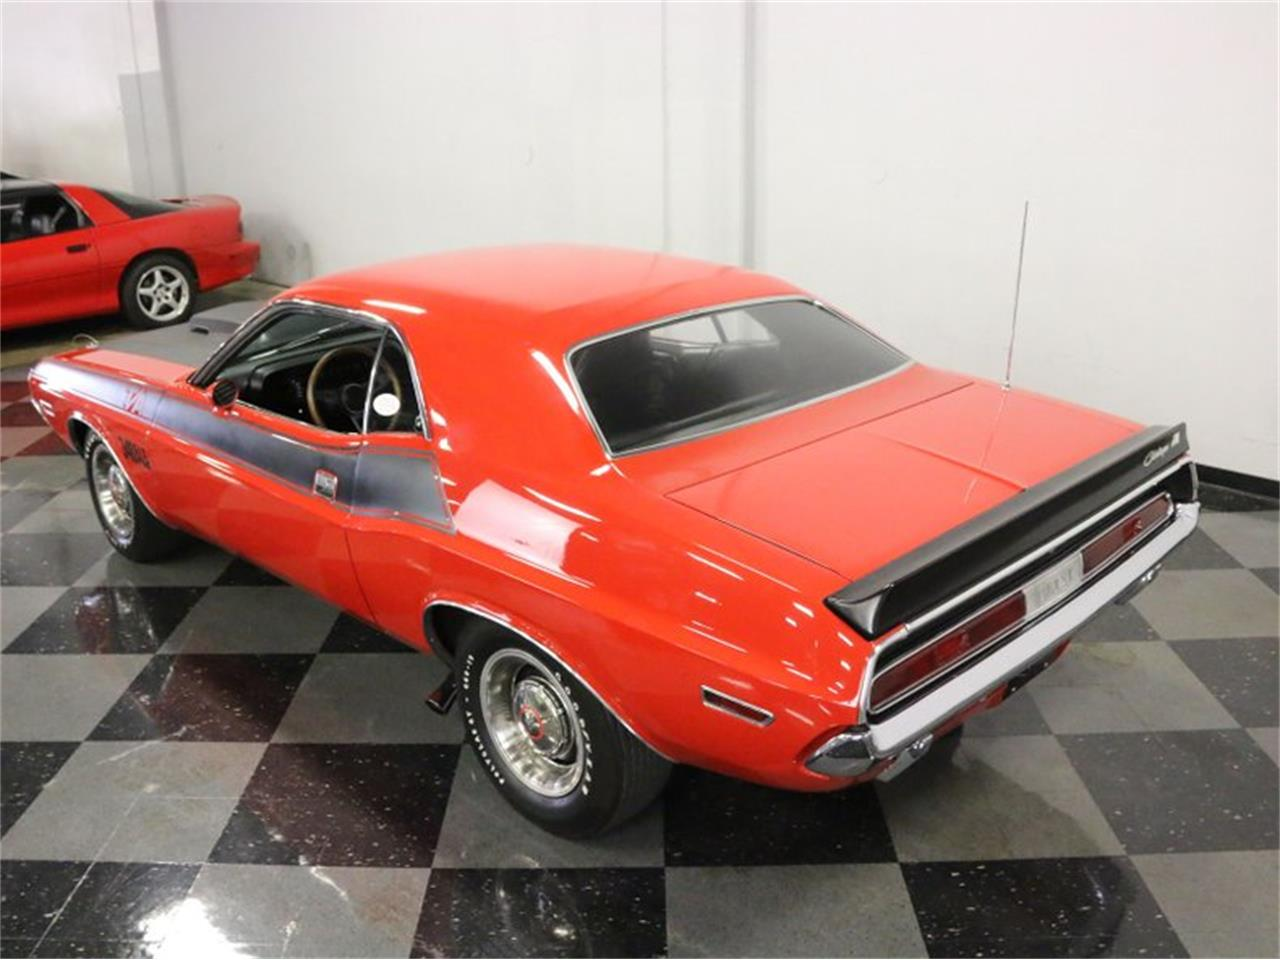 Large Picture of Classic 1970 Challenger T/A - $69,995.00 Offered by Streetside Classics - Dallas / Fort Worth - N7CT